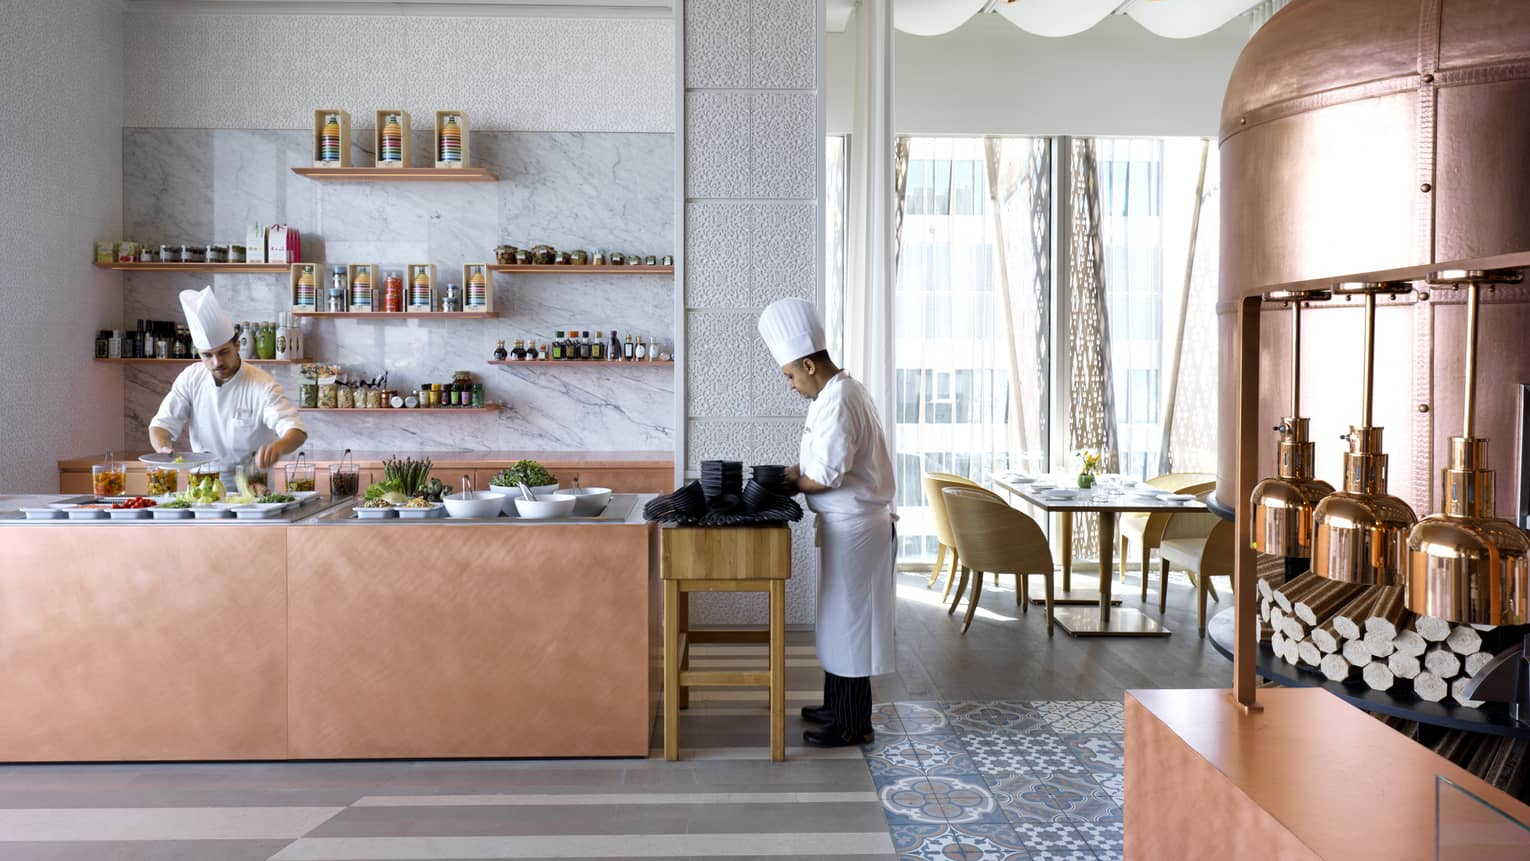 Chefs in white uniforms, hats prepare buffet counter in sunny dining room